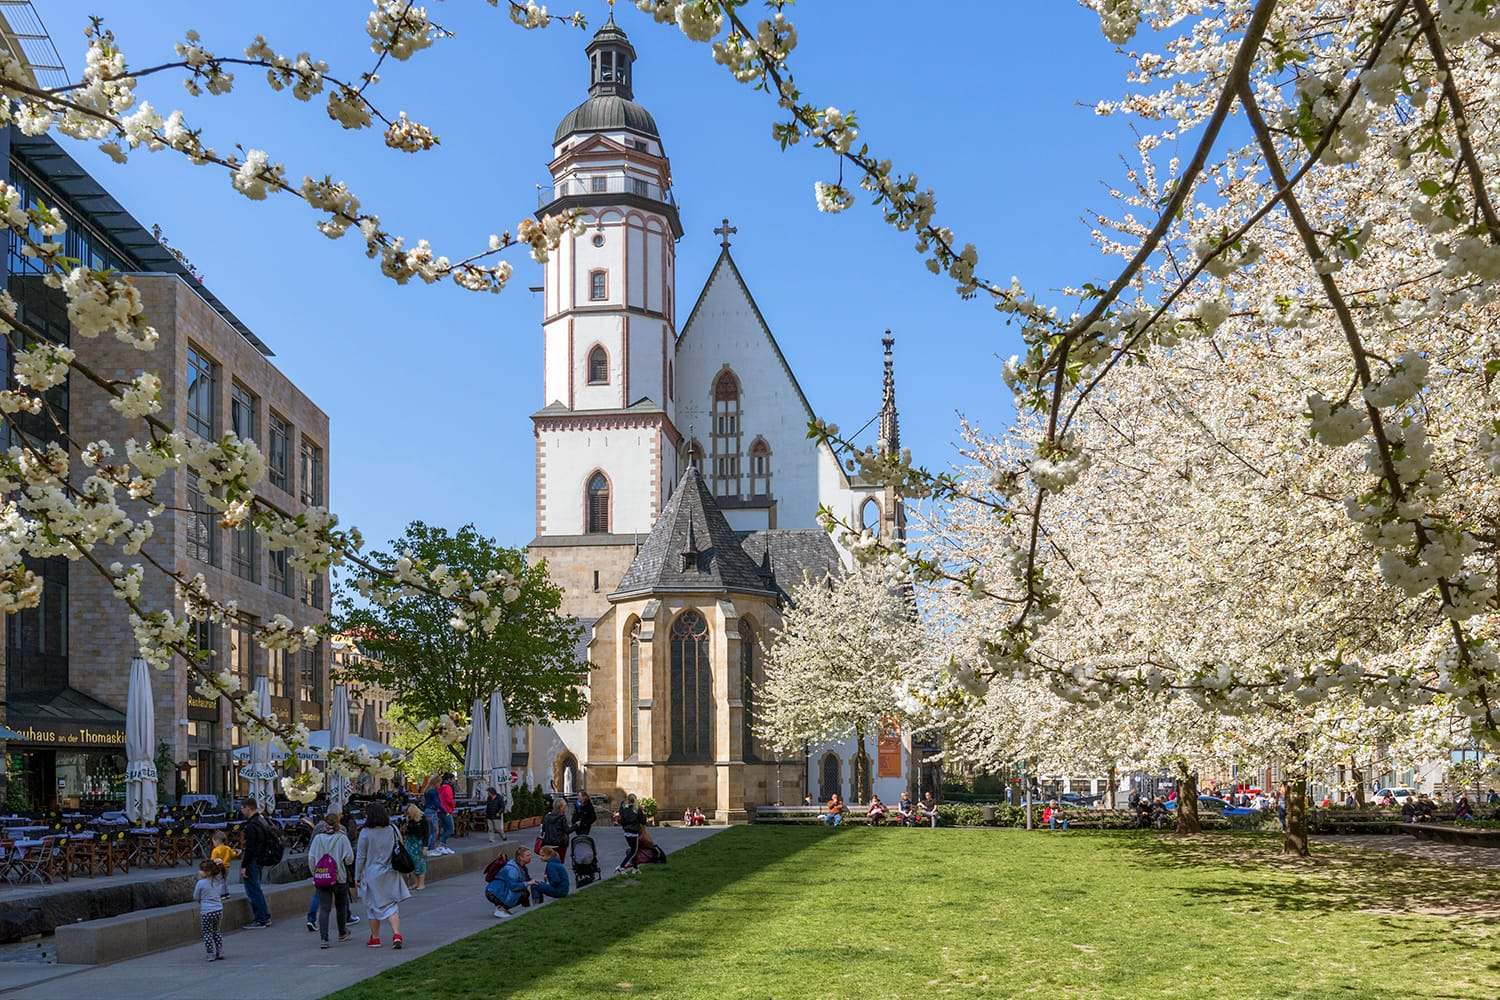 Flowering trees in front of the St. Thomas Church in Leipzig, Germany